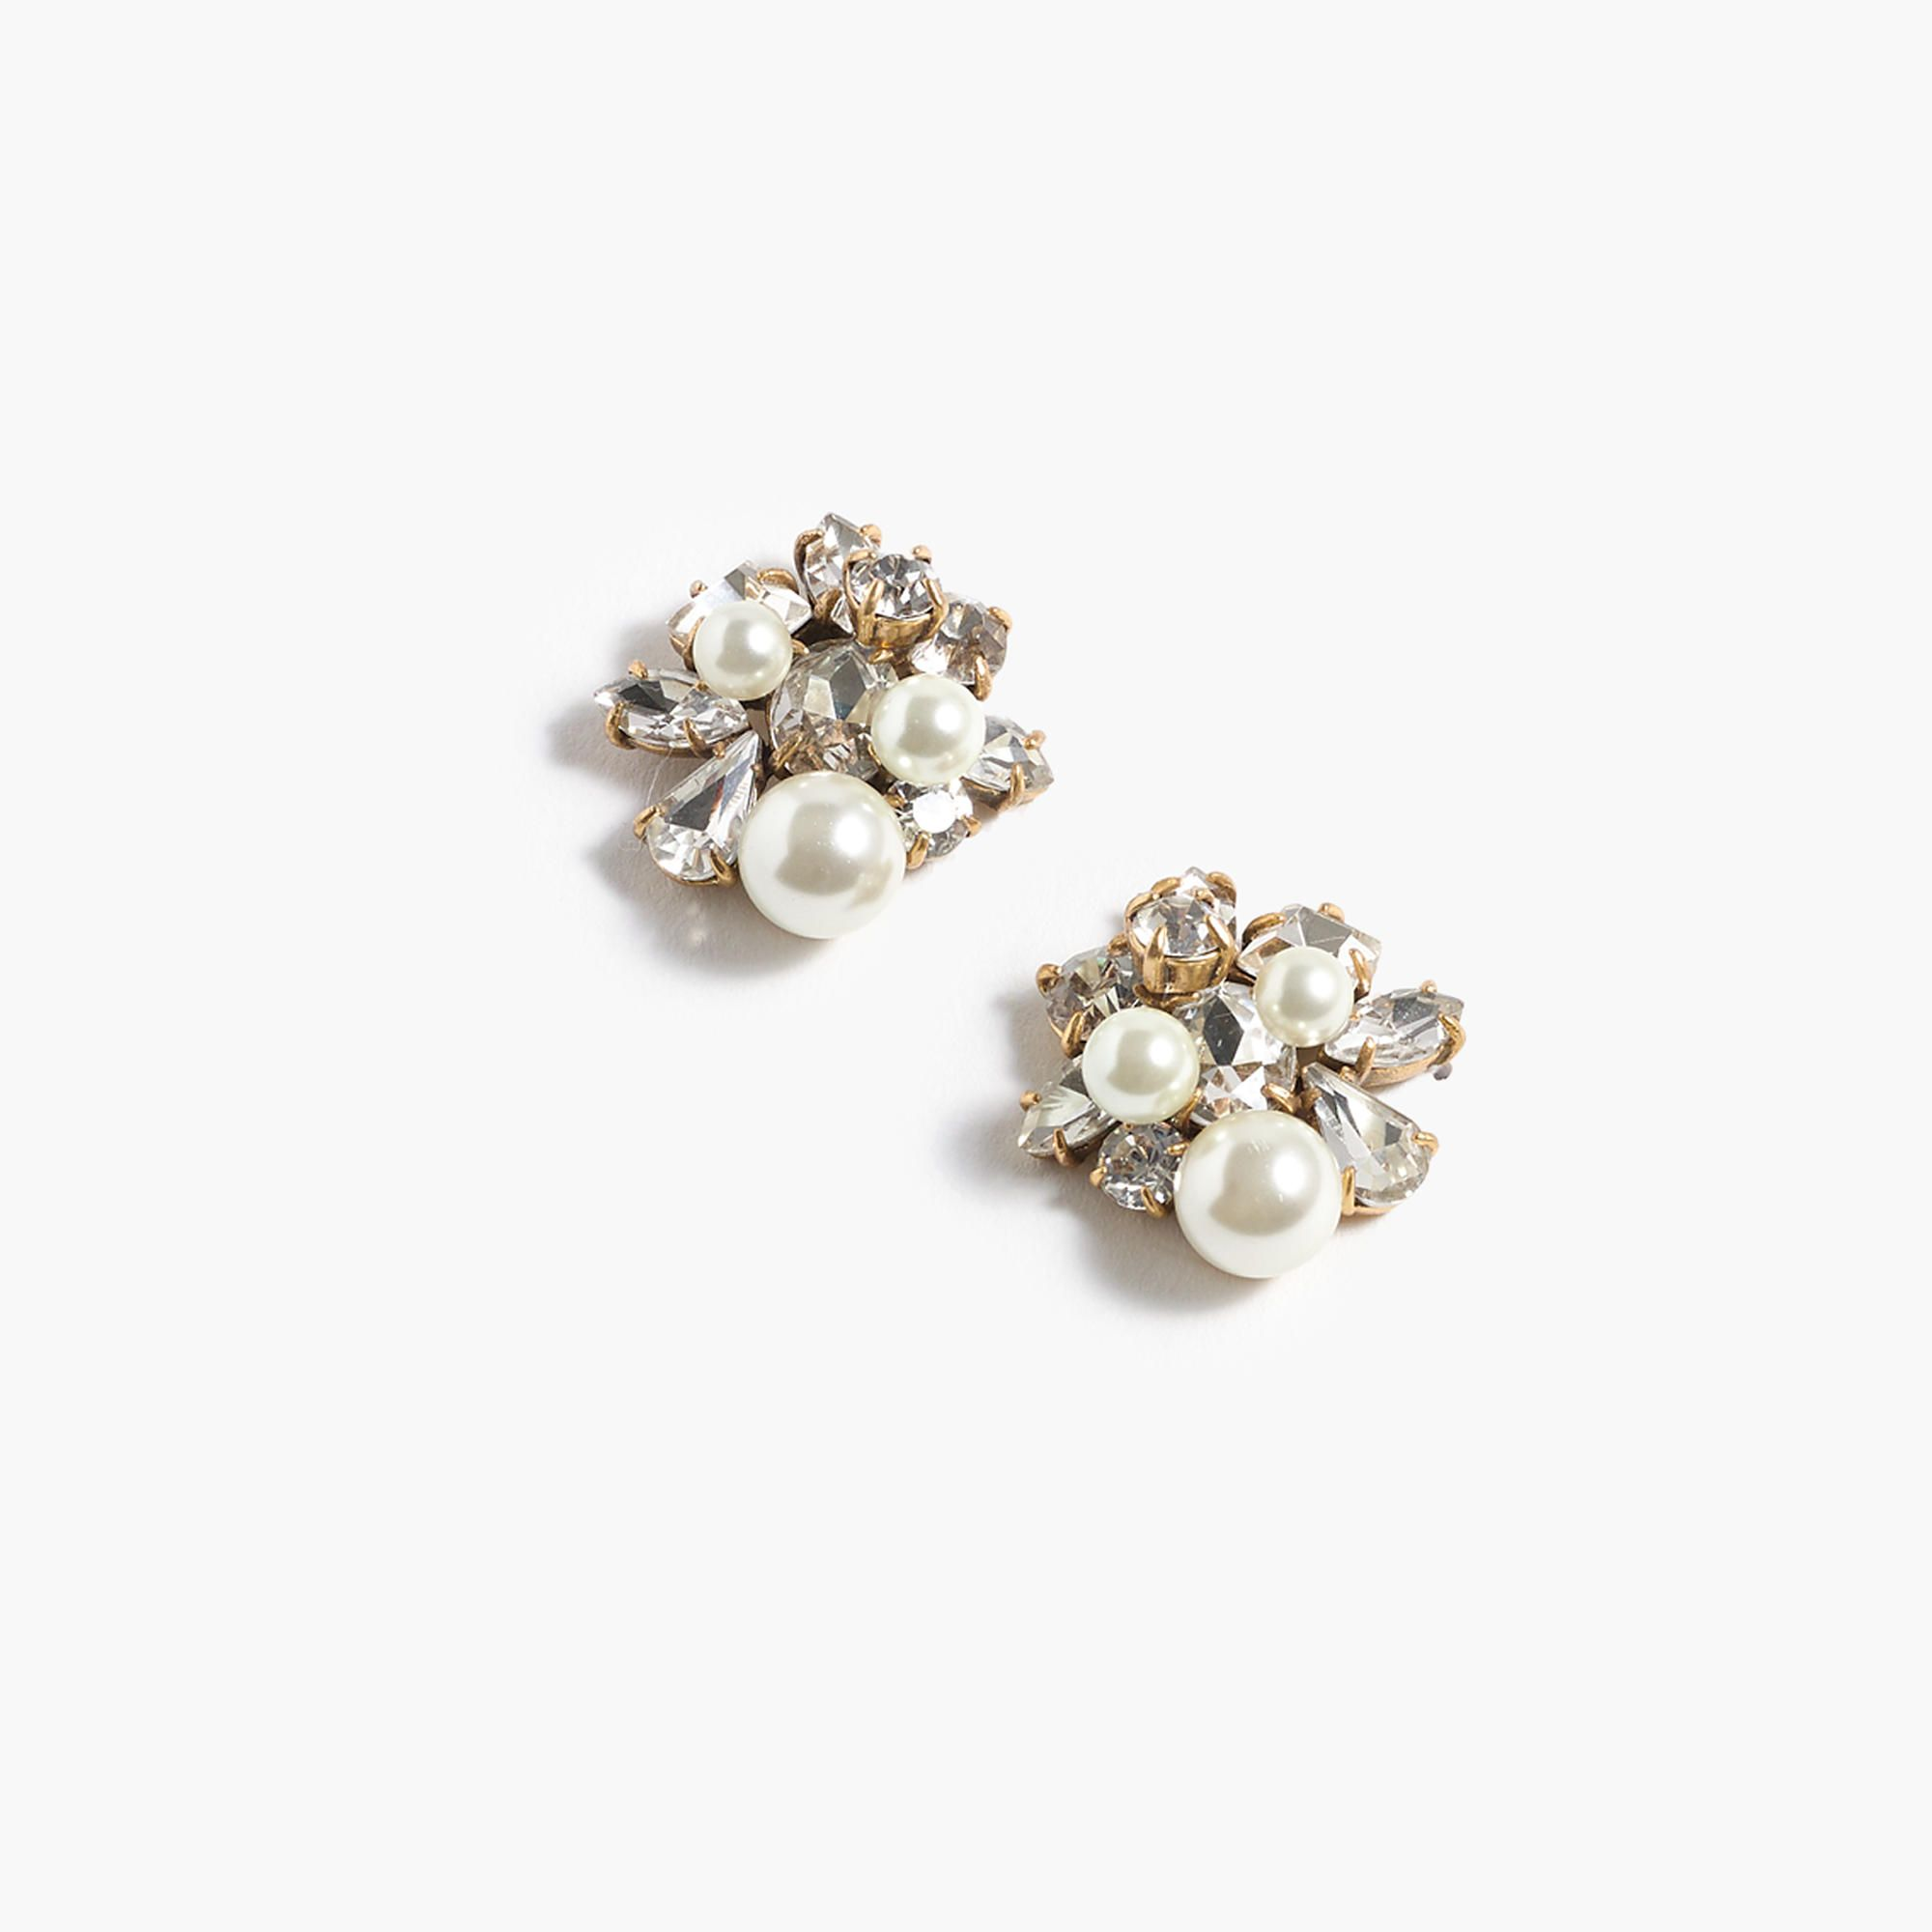 The Pearl And Crystal Earrings At Jcrew See Our Entire Selection Of Women S